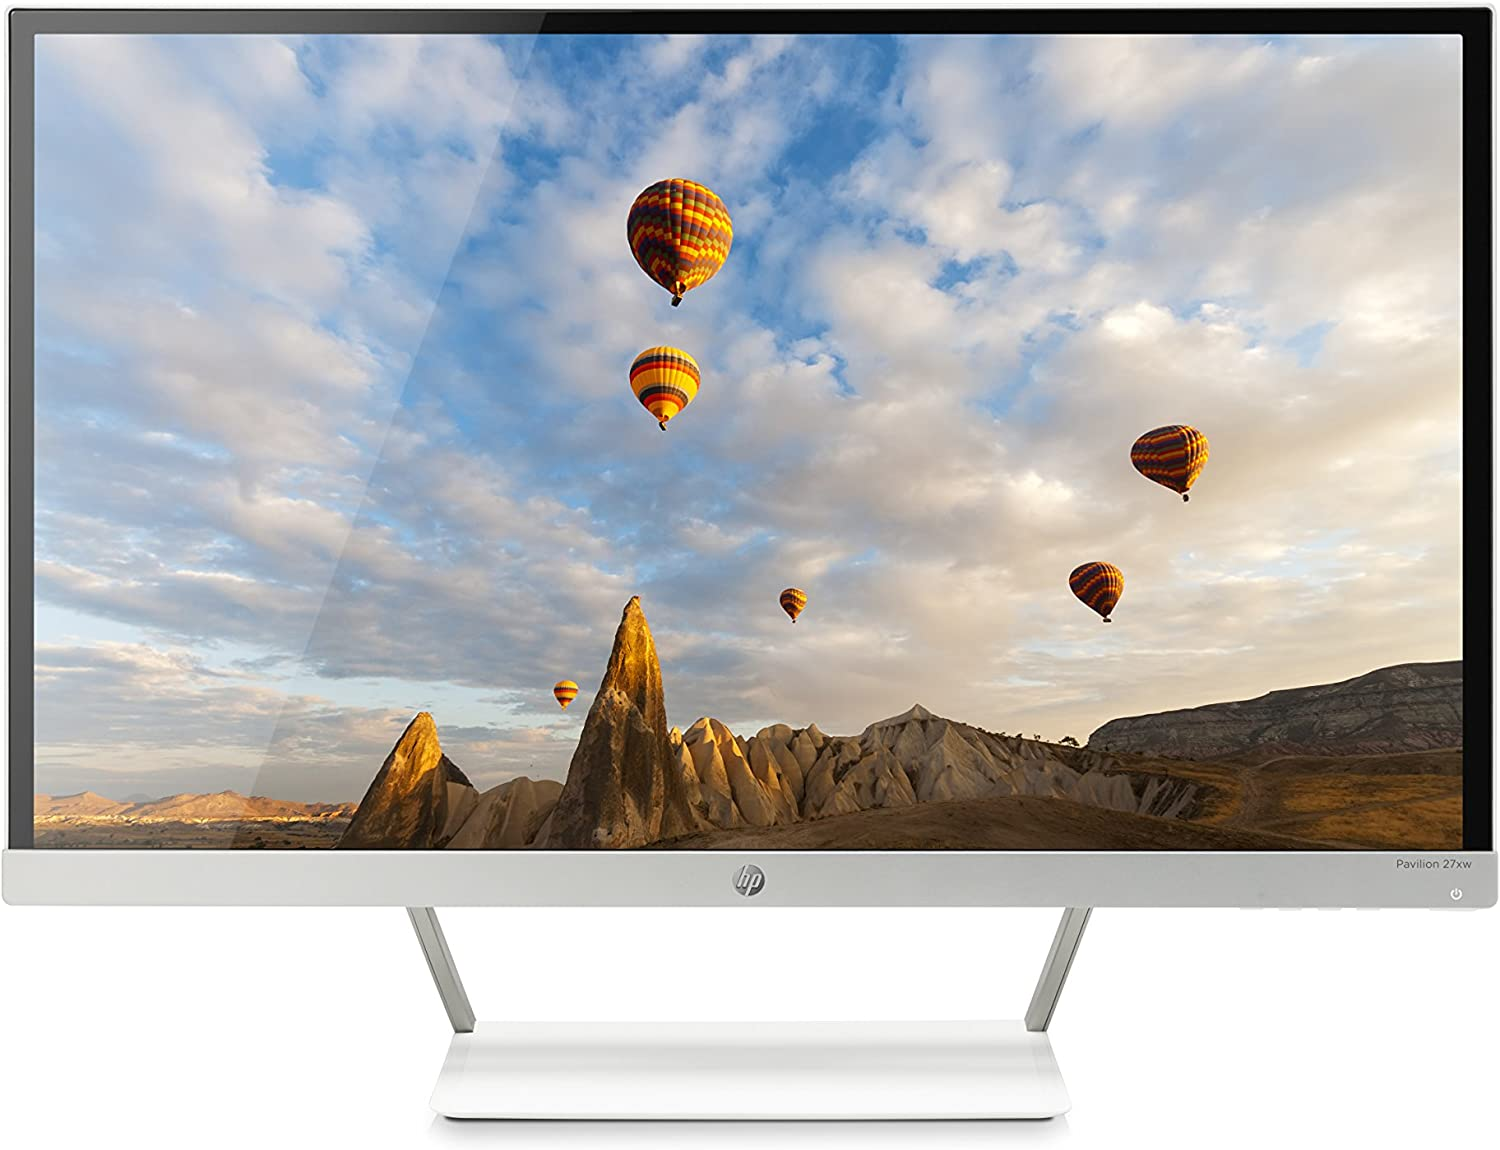 (Discontinued) HP Pavilion 27xw 27-in IPS LED Backlit Monitor